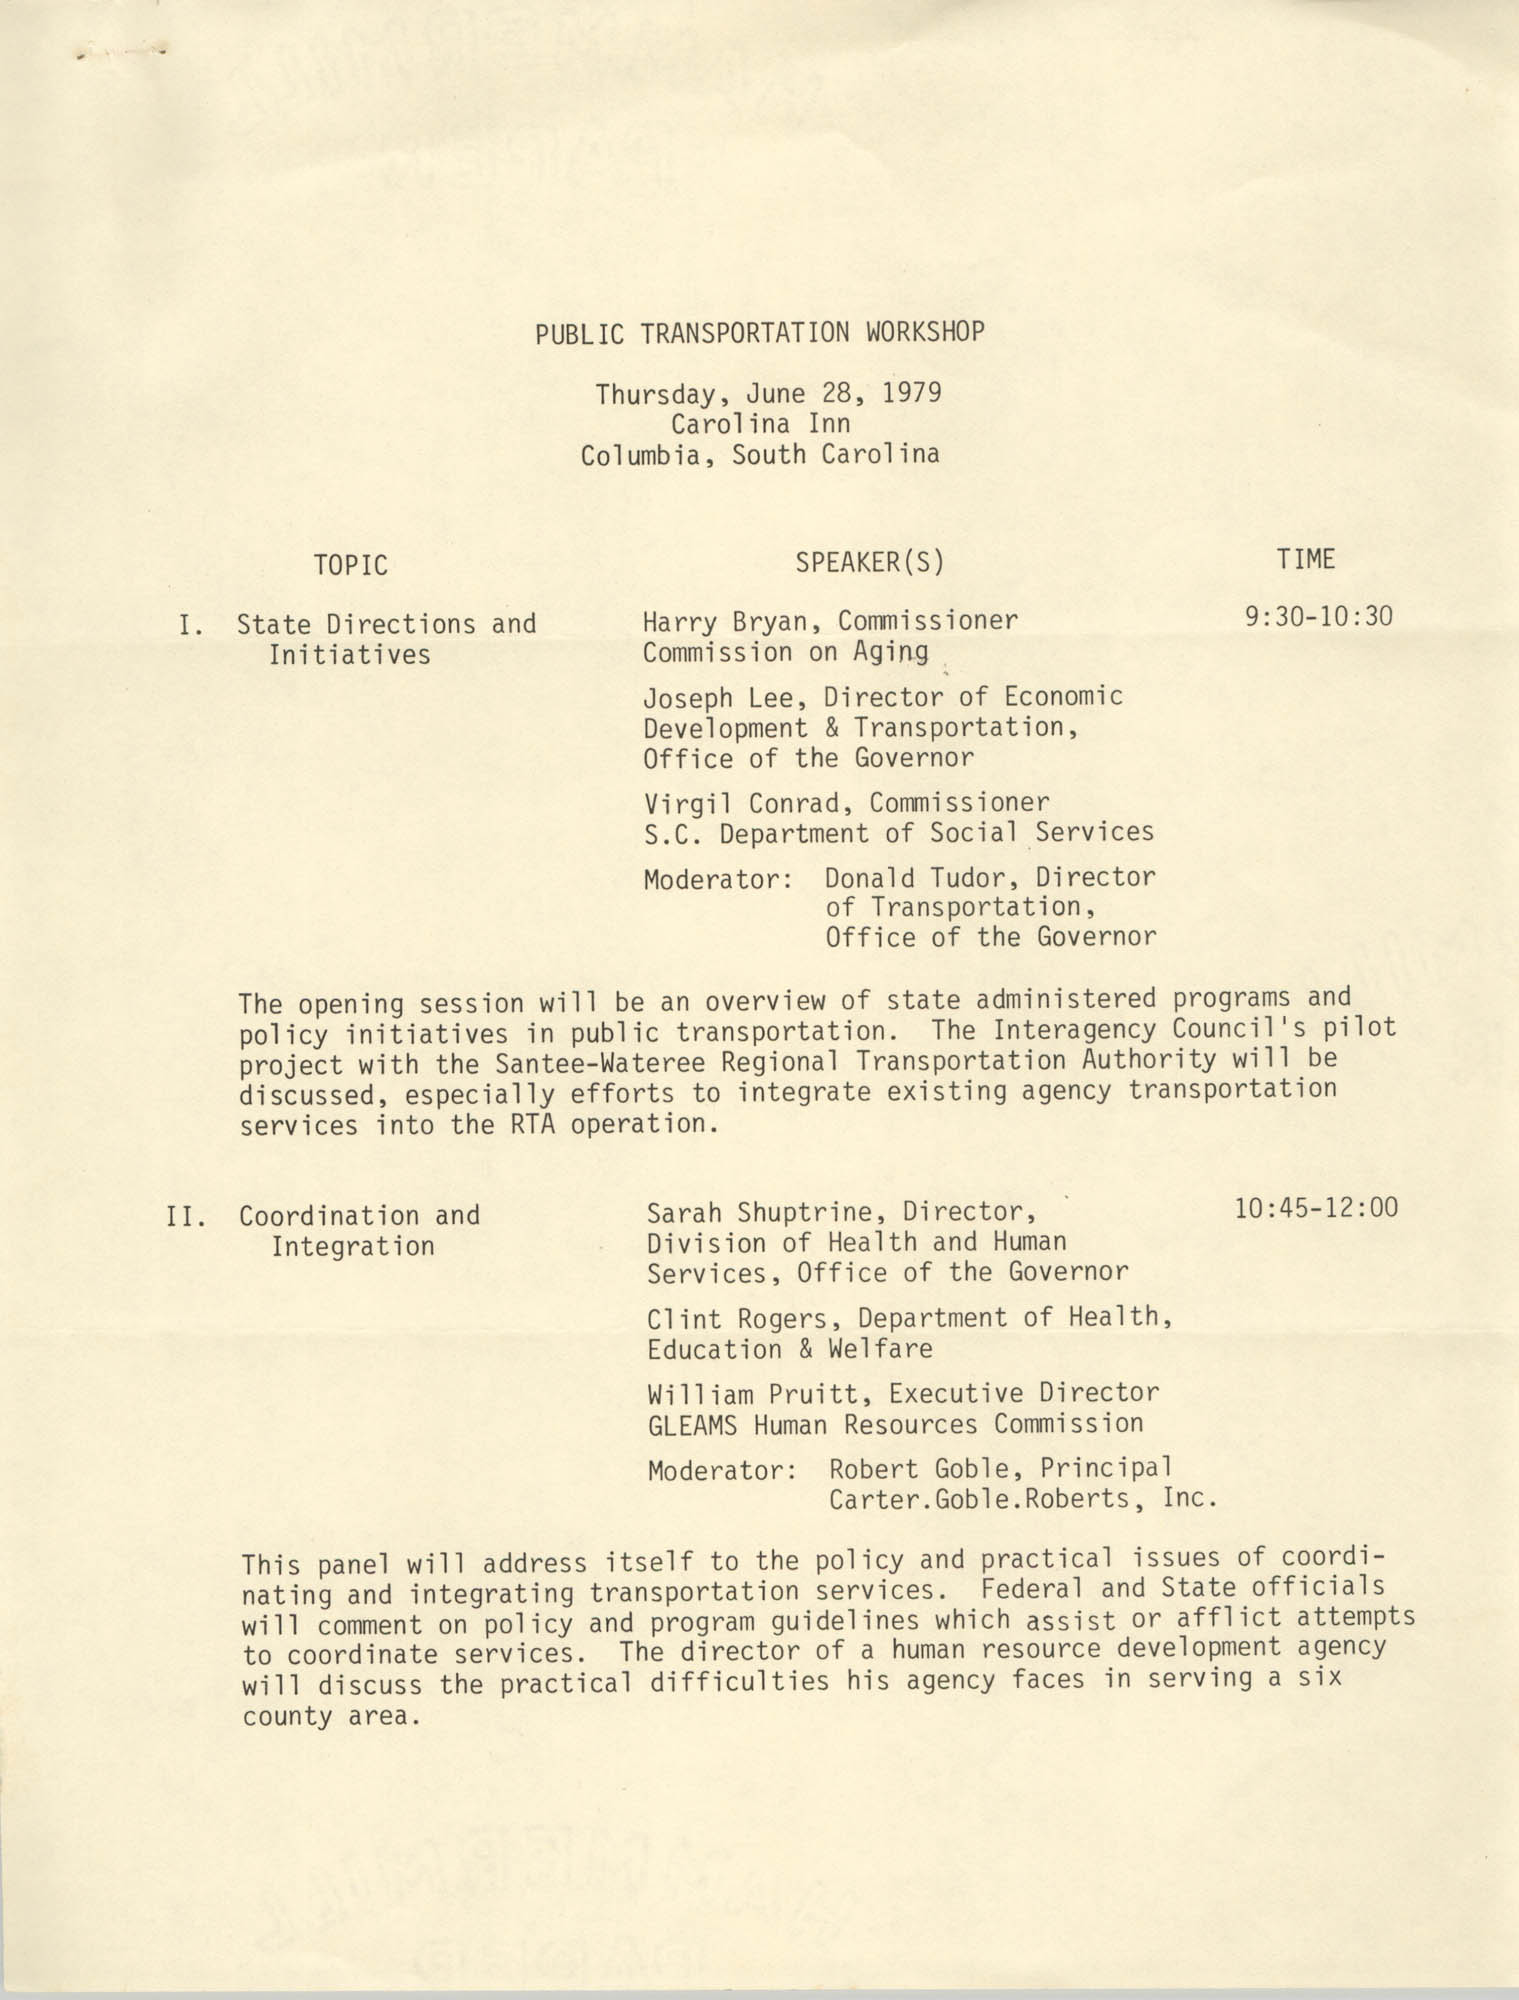 Public Transportation Workshop Agenda, June 28, 1979